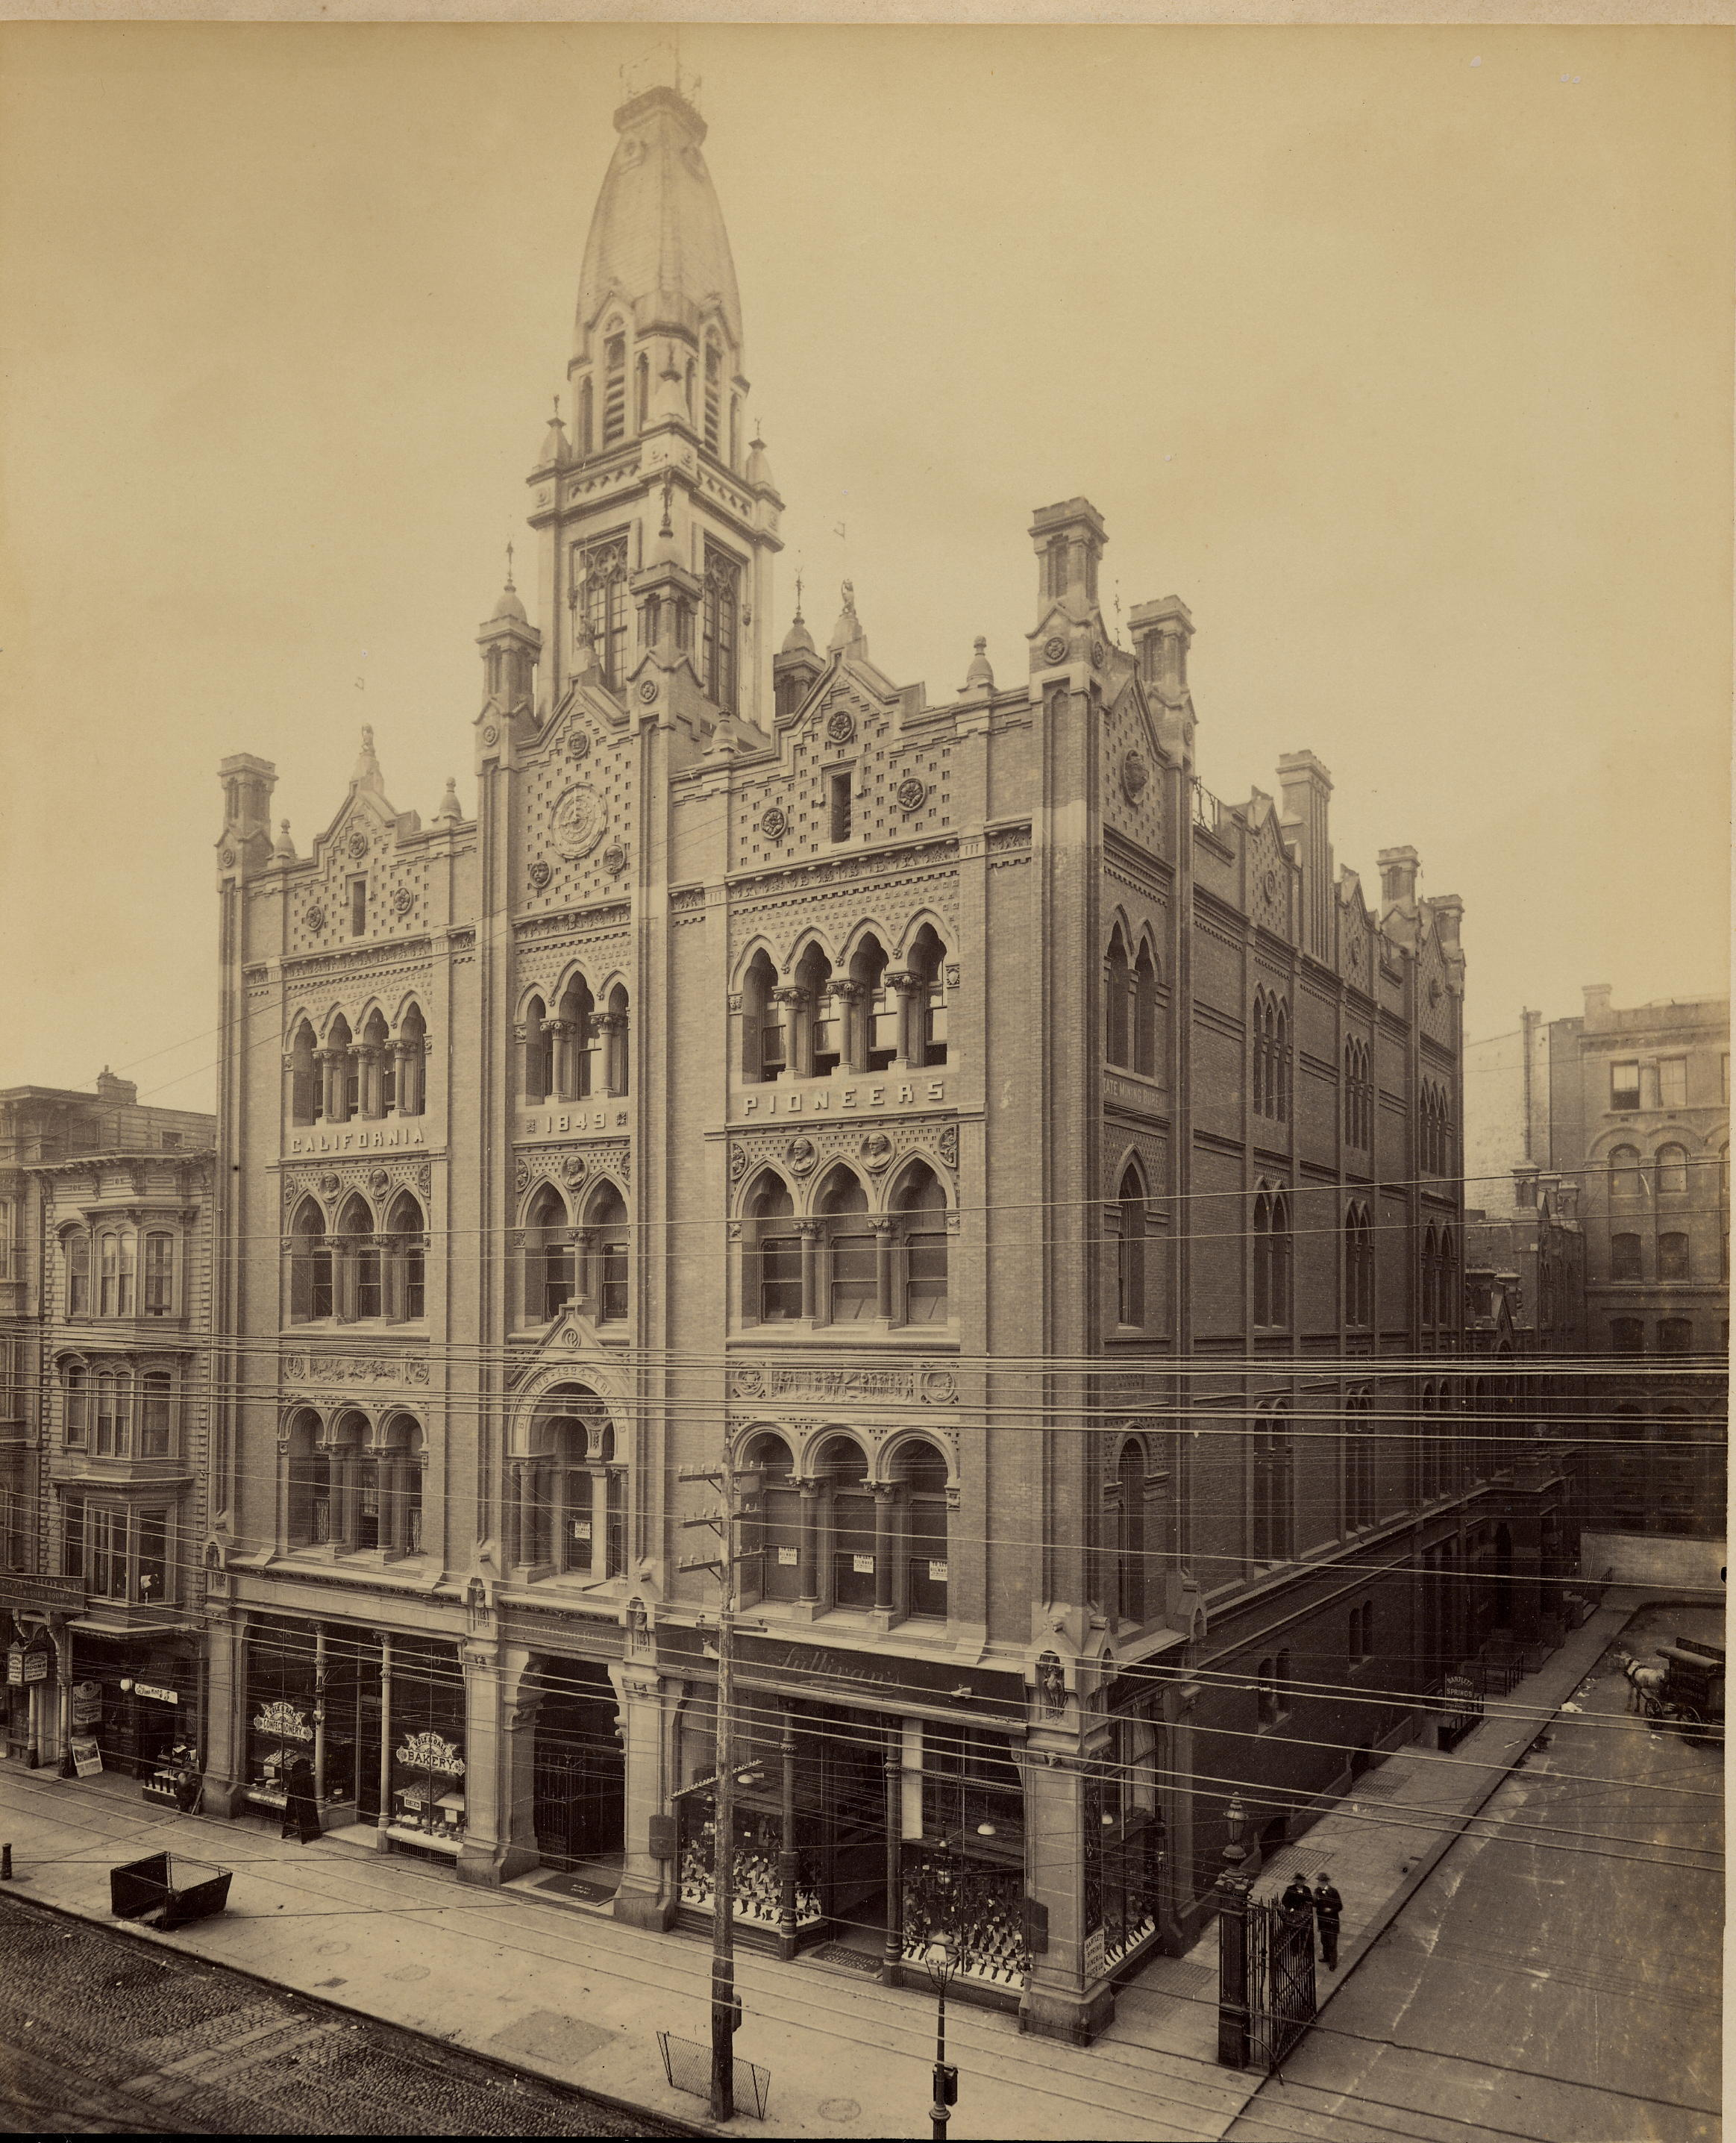 One of several buildings used as the Society's Pioneer Hall over the years, 1886-1906 (image from the Society of California Pioneers)